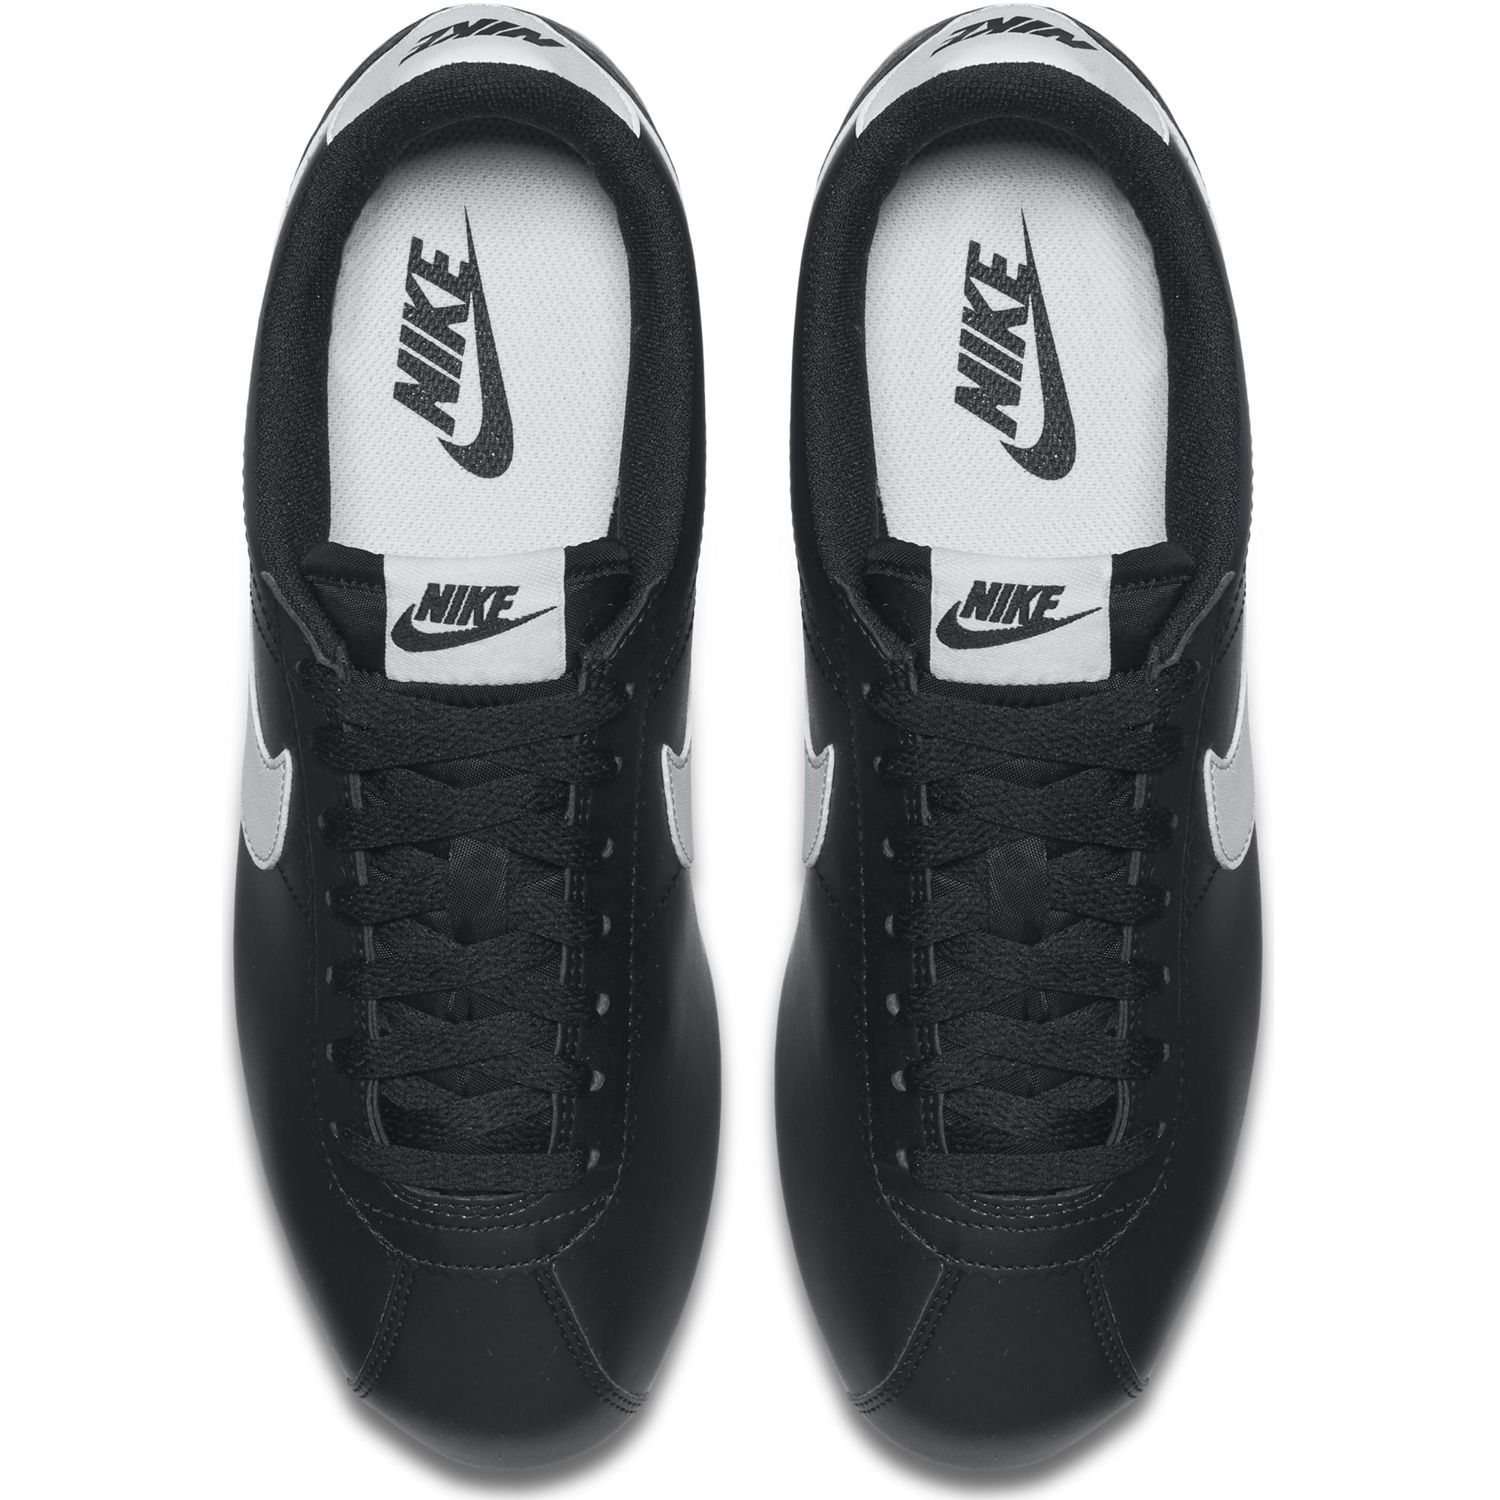 Buty damskie Nike Classic Cortez Leather Black/White 807471 010